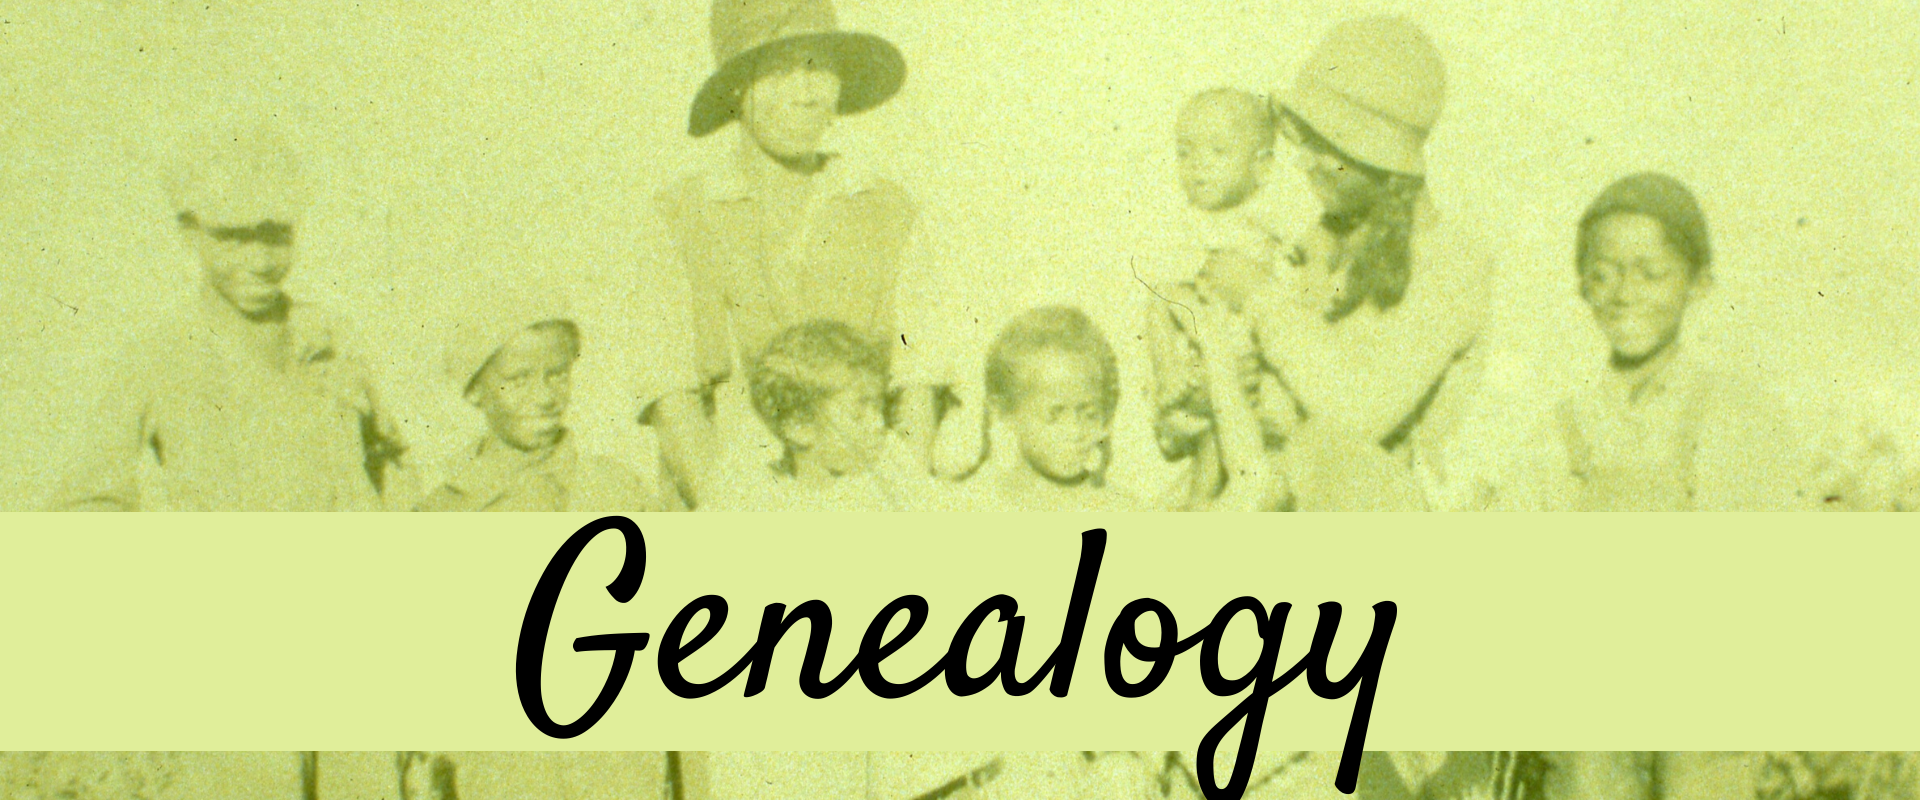 Genealogy Cover Photo